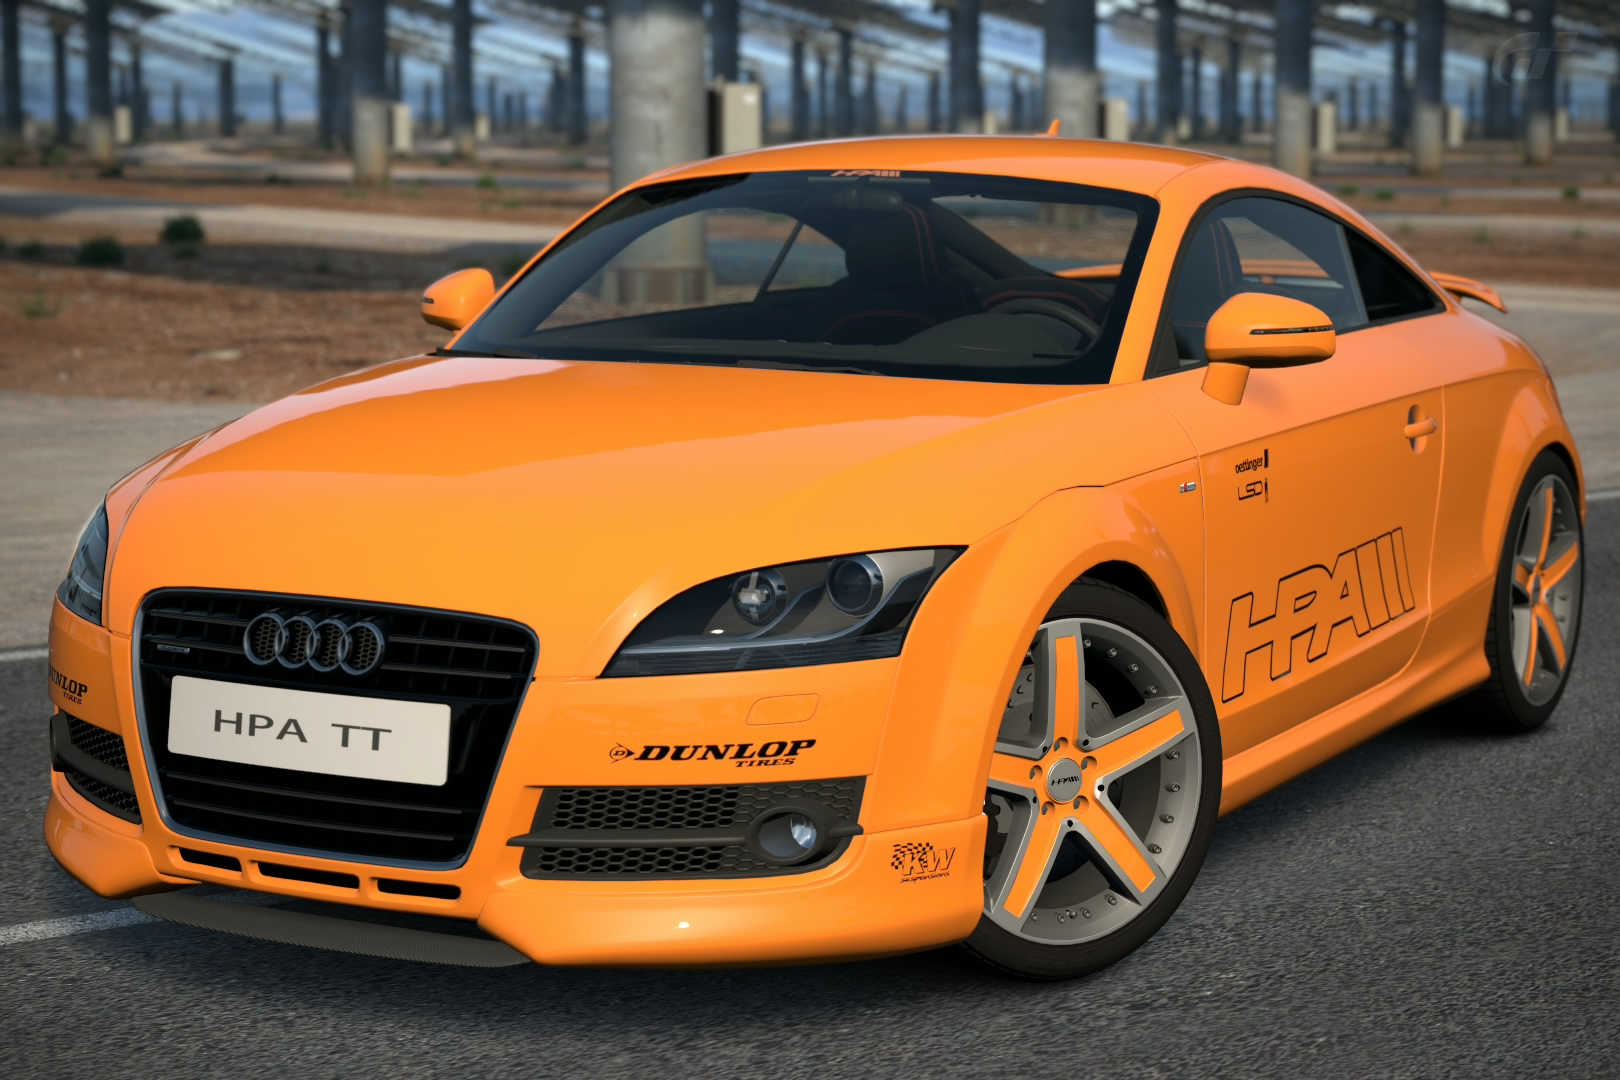 2007 HPA Motorsports FT565 twin turbo Audi TT